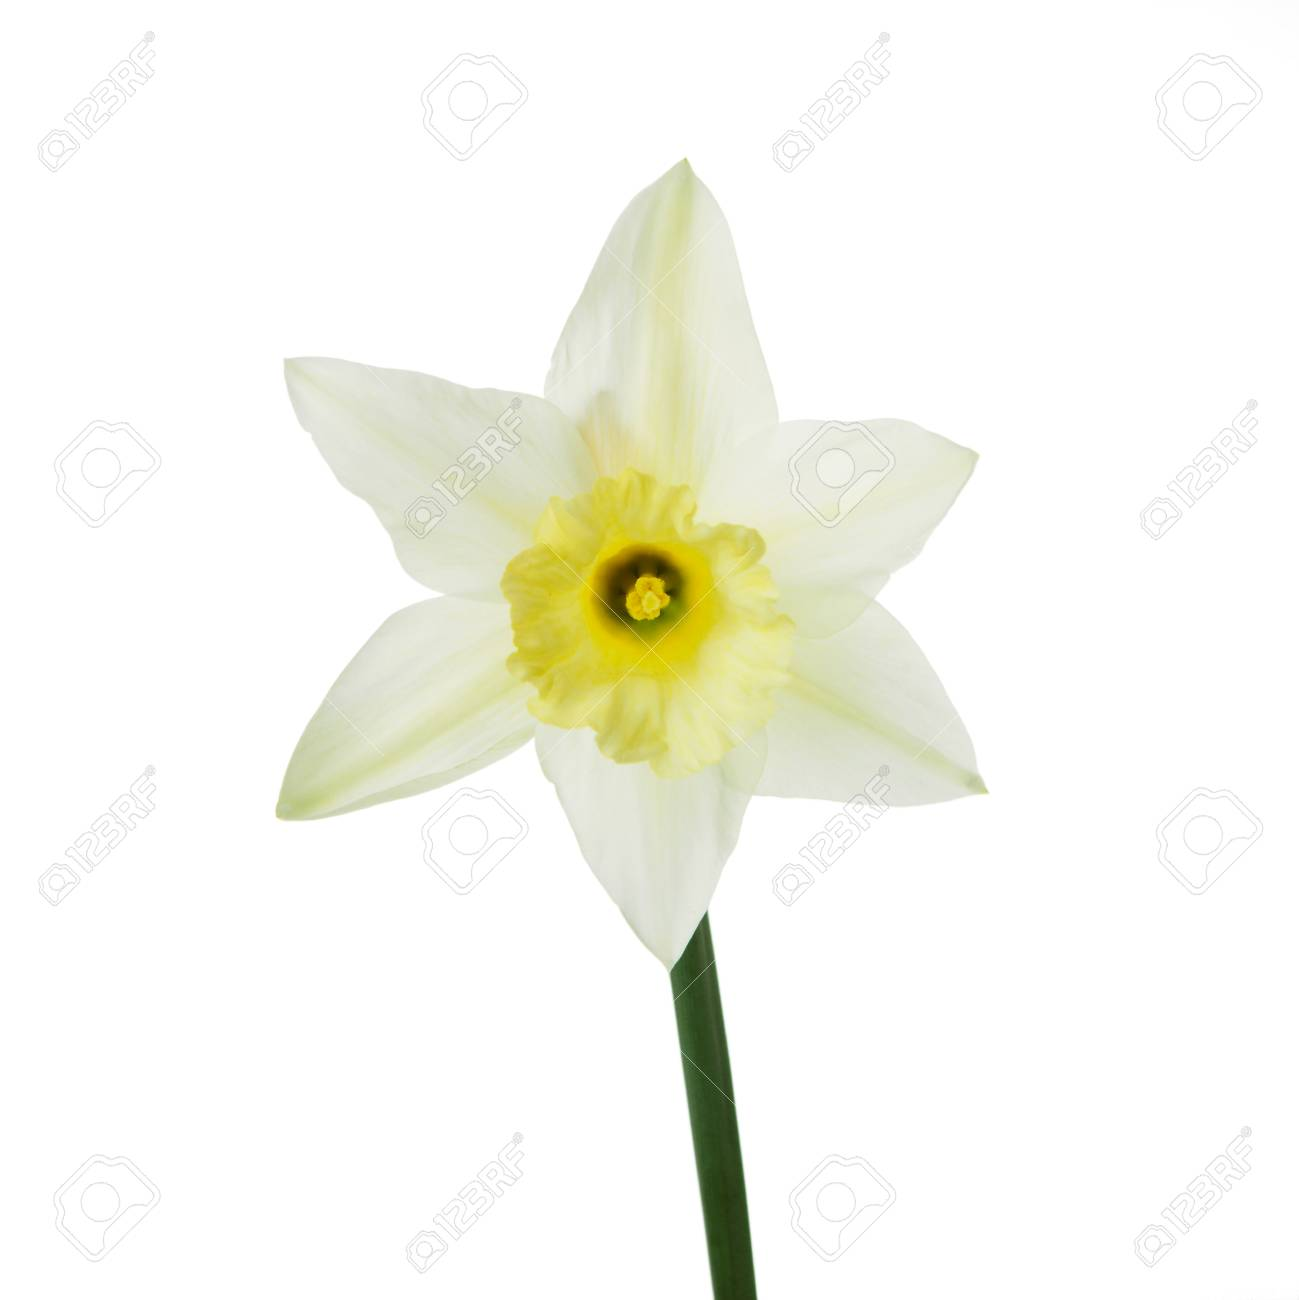 Single Yellow Narcissus Flower Lying On Its Side Composition